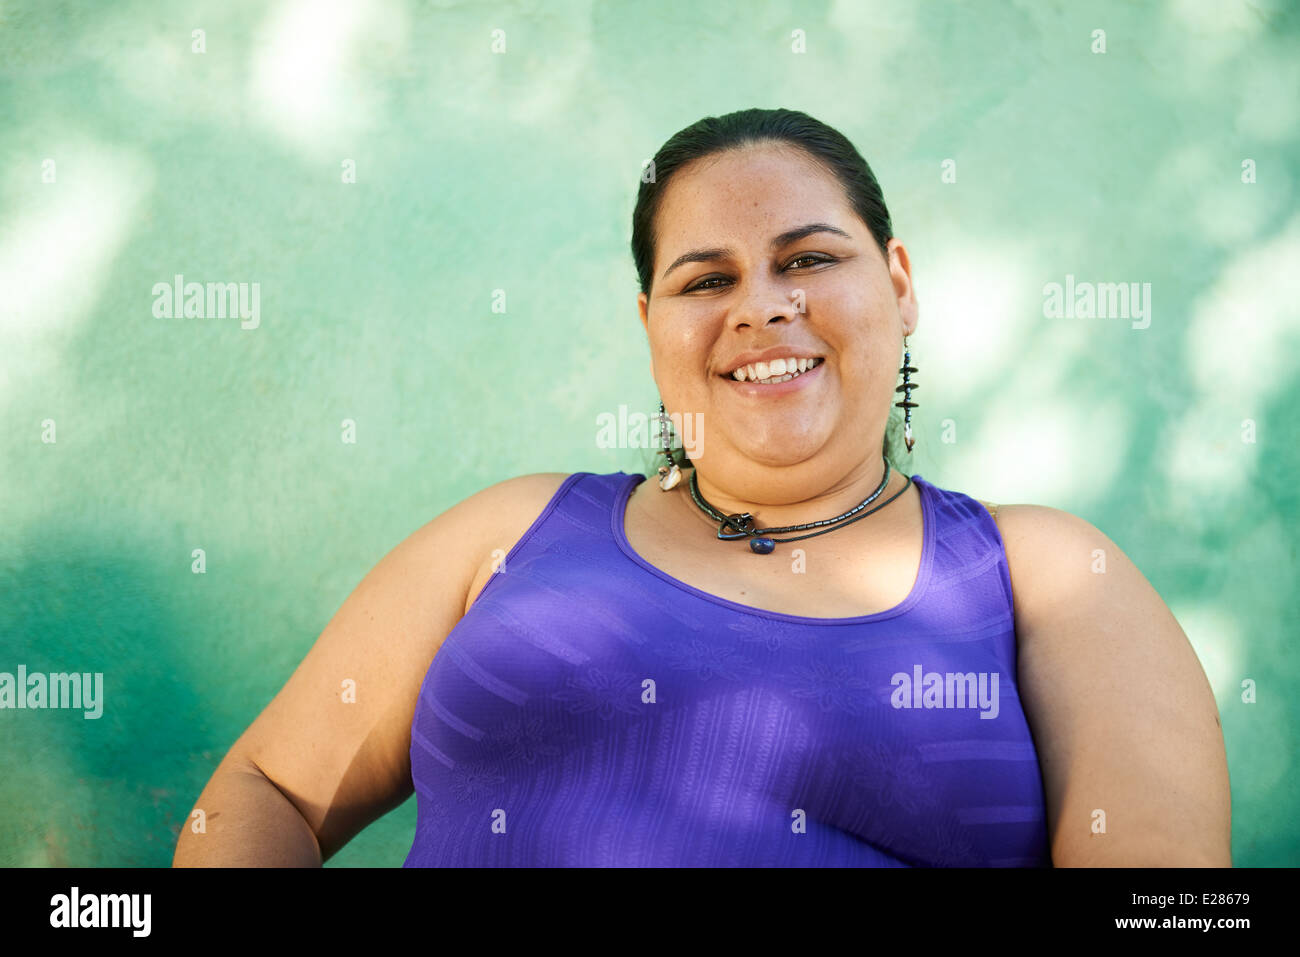 Portrait of overweight hispanic woman looking at camera and smiling - Stock Image